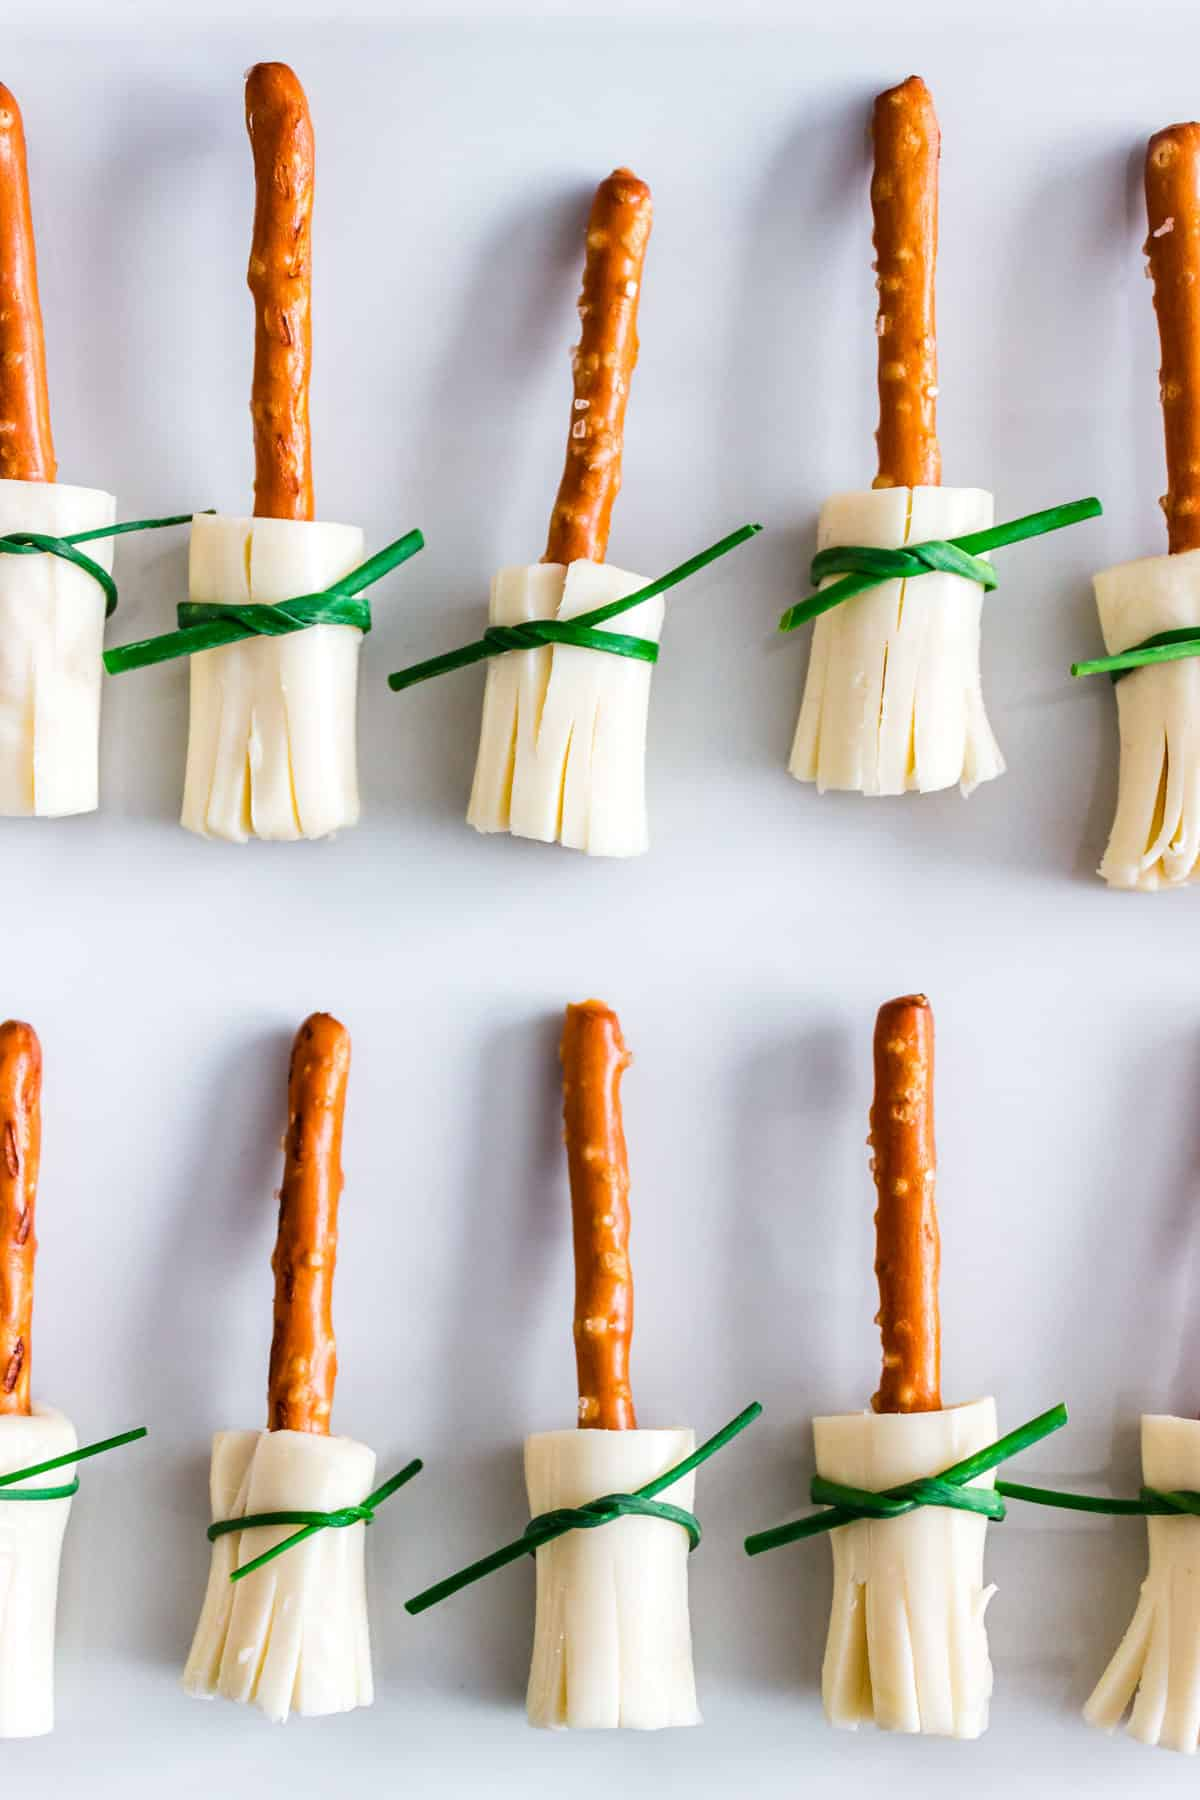 Little broomsticks made with pretzel sticks, string cheese, and chives.